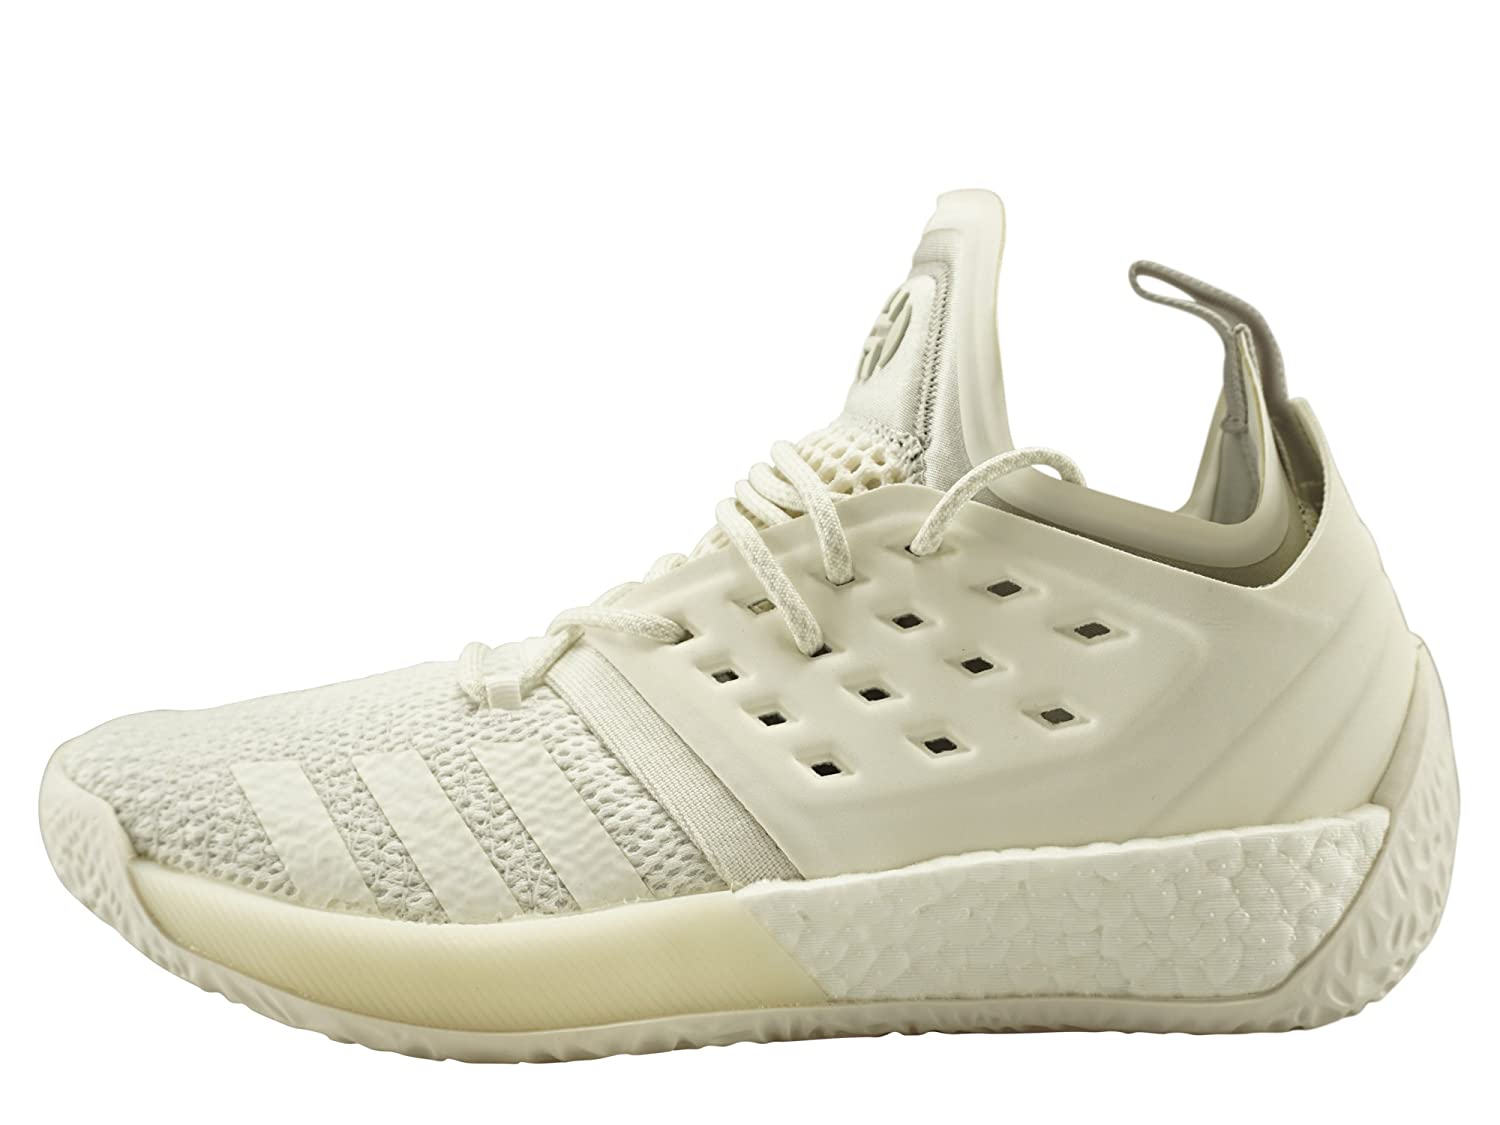 Adidas Harden Harden Harden Vol. 2, Chaussures de Basketball Homme 40 EU|Gris (Greone/Clowhi/Greone Greone/Clowhi/Greone) d66a12